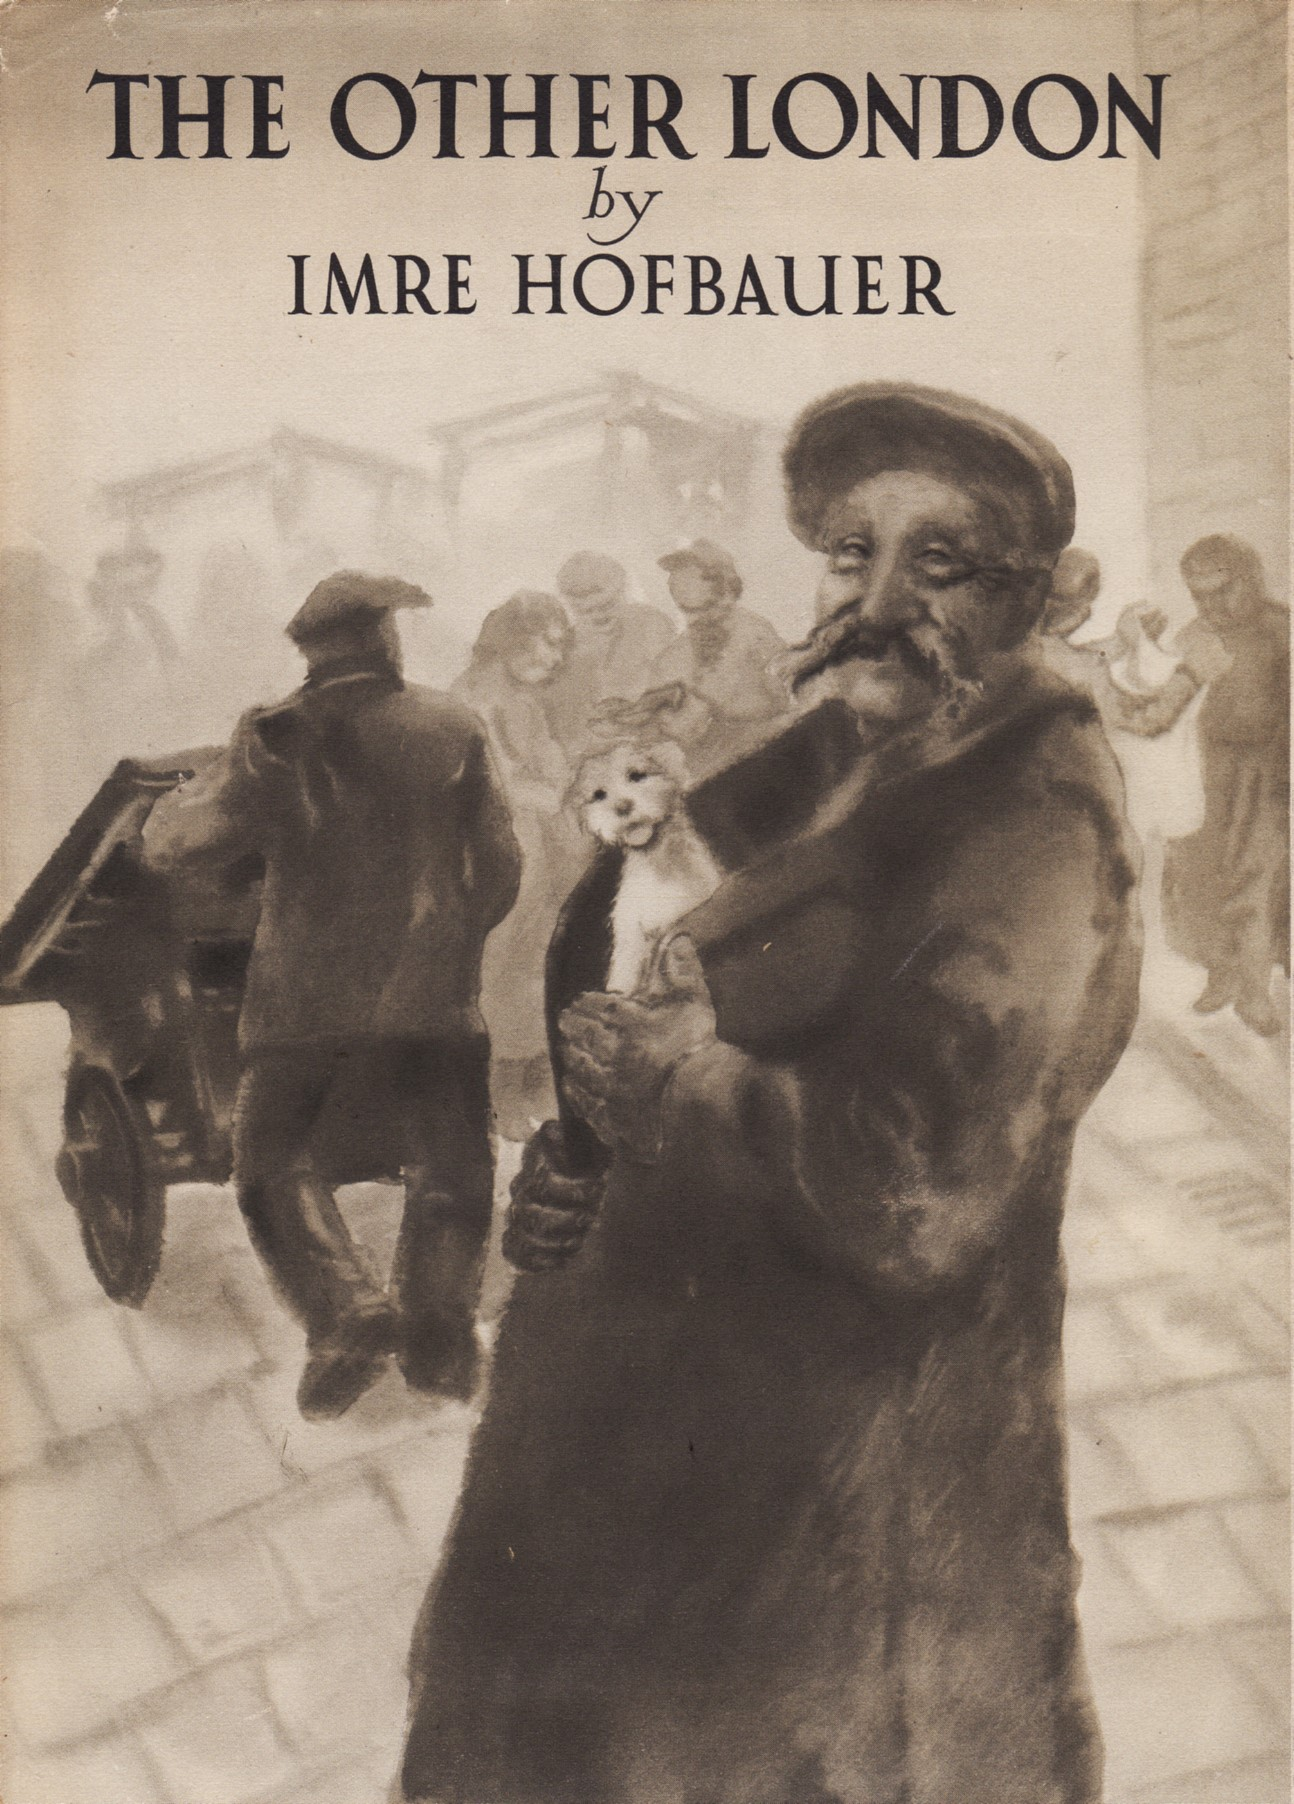 """THE OTHER LONDON (1948) - Drawings and text by Imre Hofbauer""""A pictural commentary upon a London that does not appear in the guide books."""""""